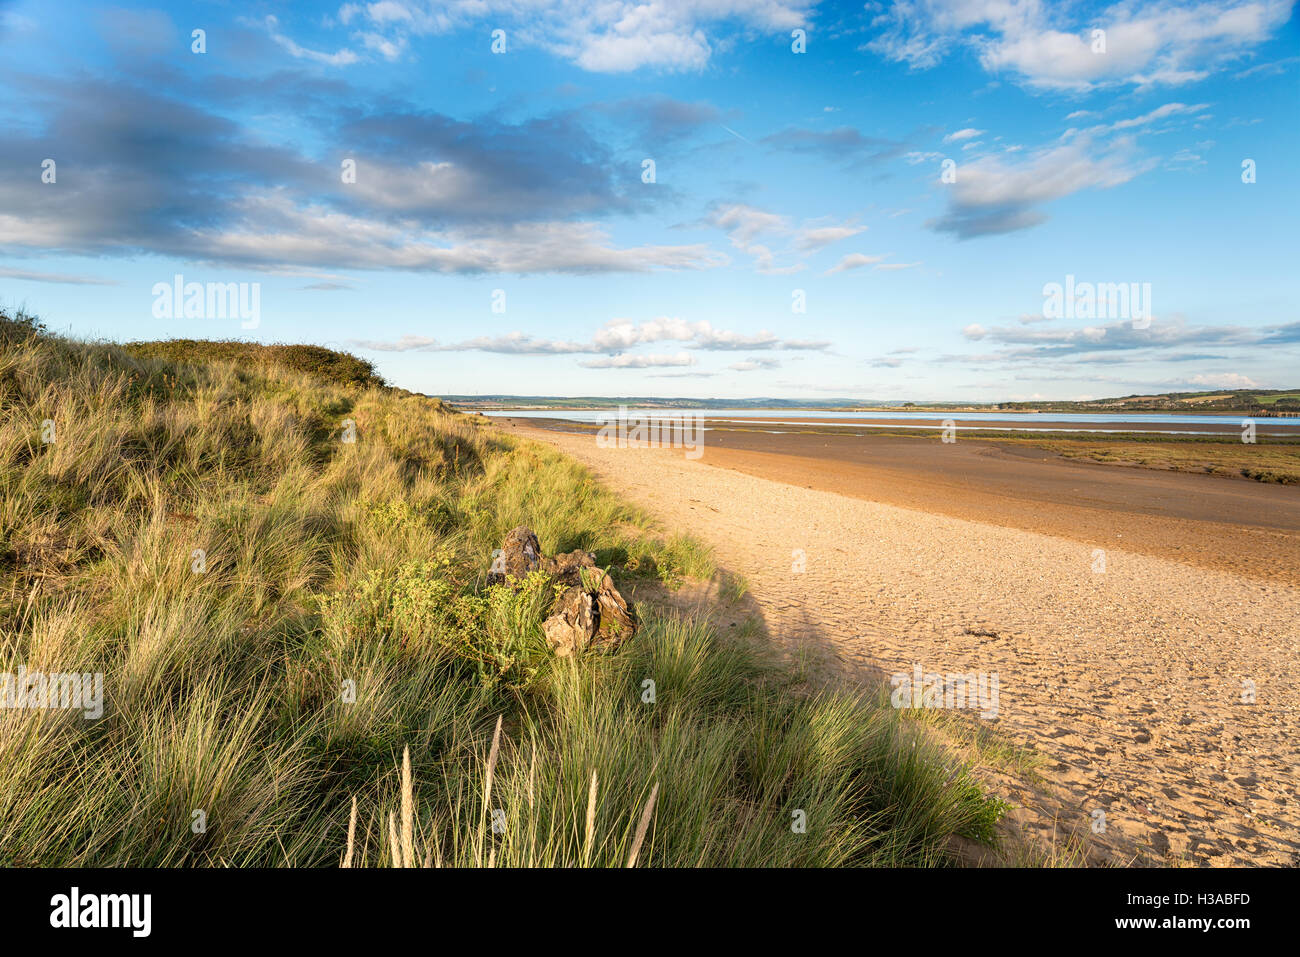 The beach at Braunton Burrows near Barnstaple on the Devon coast Stock Photo